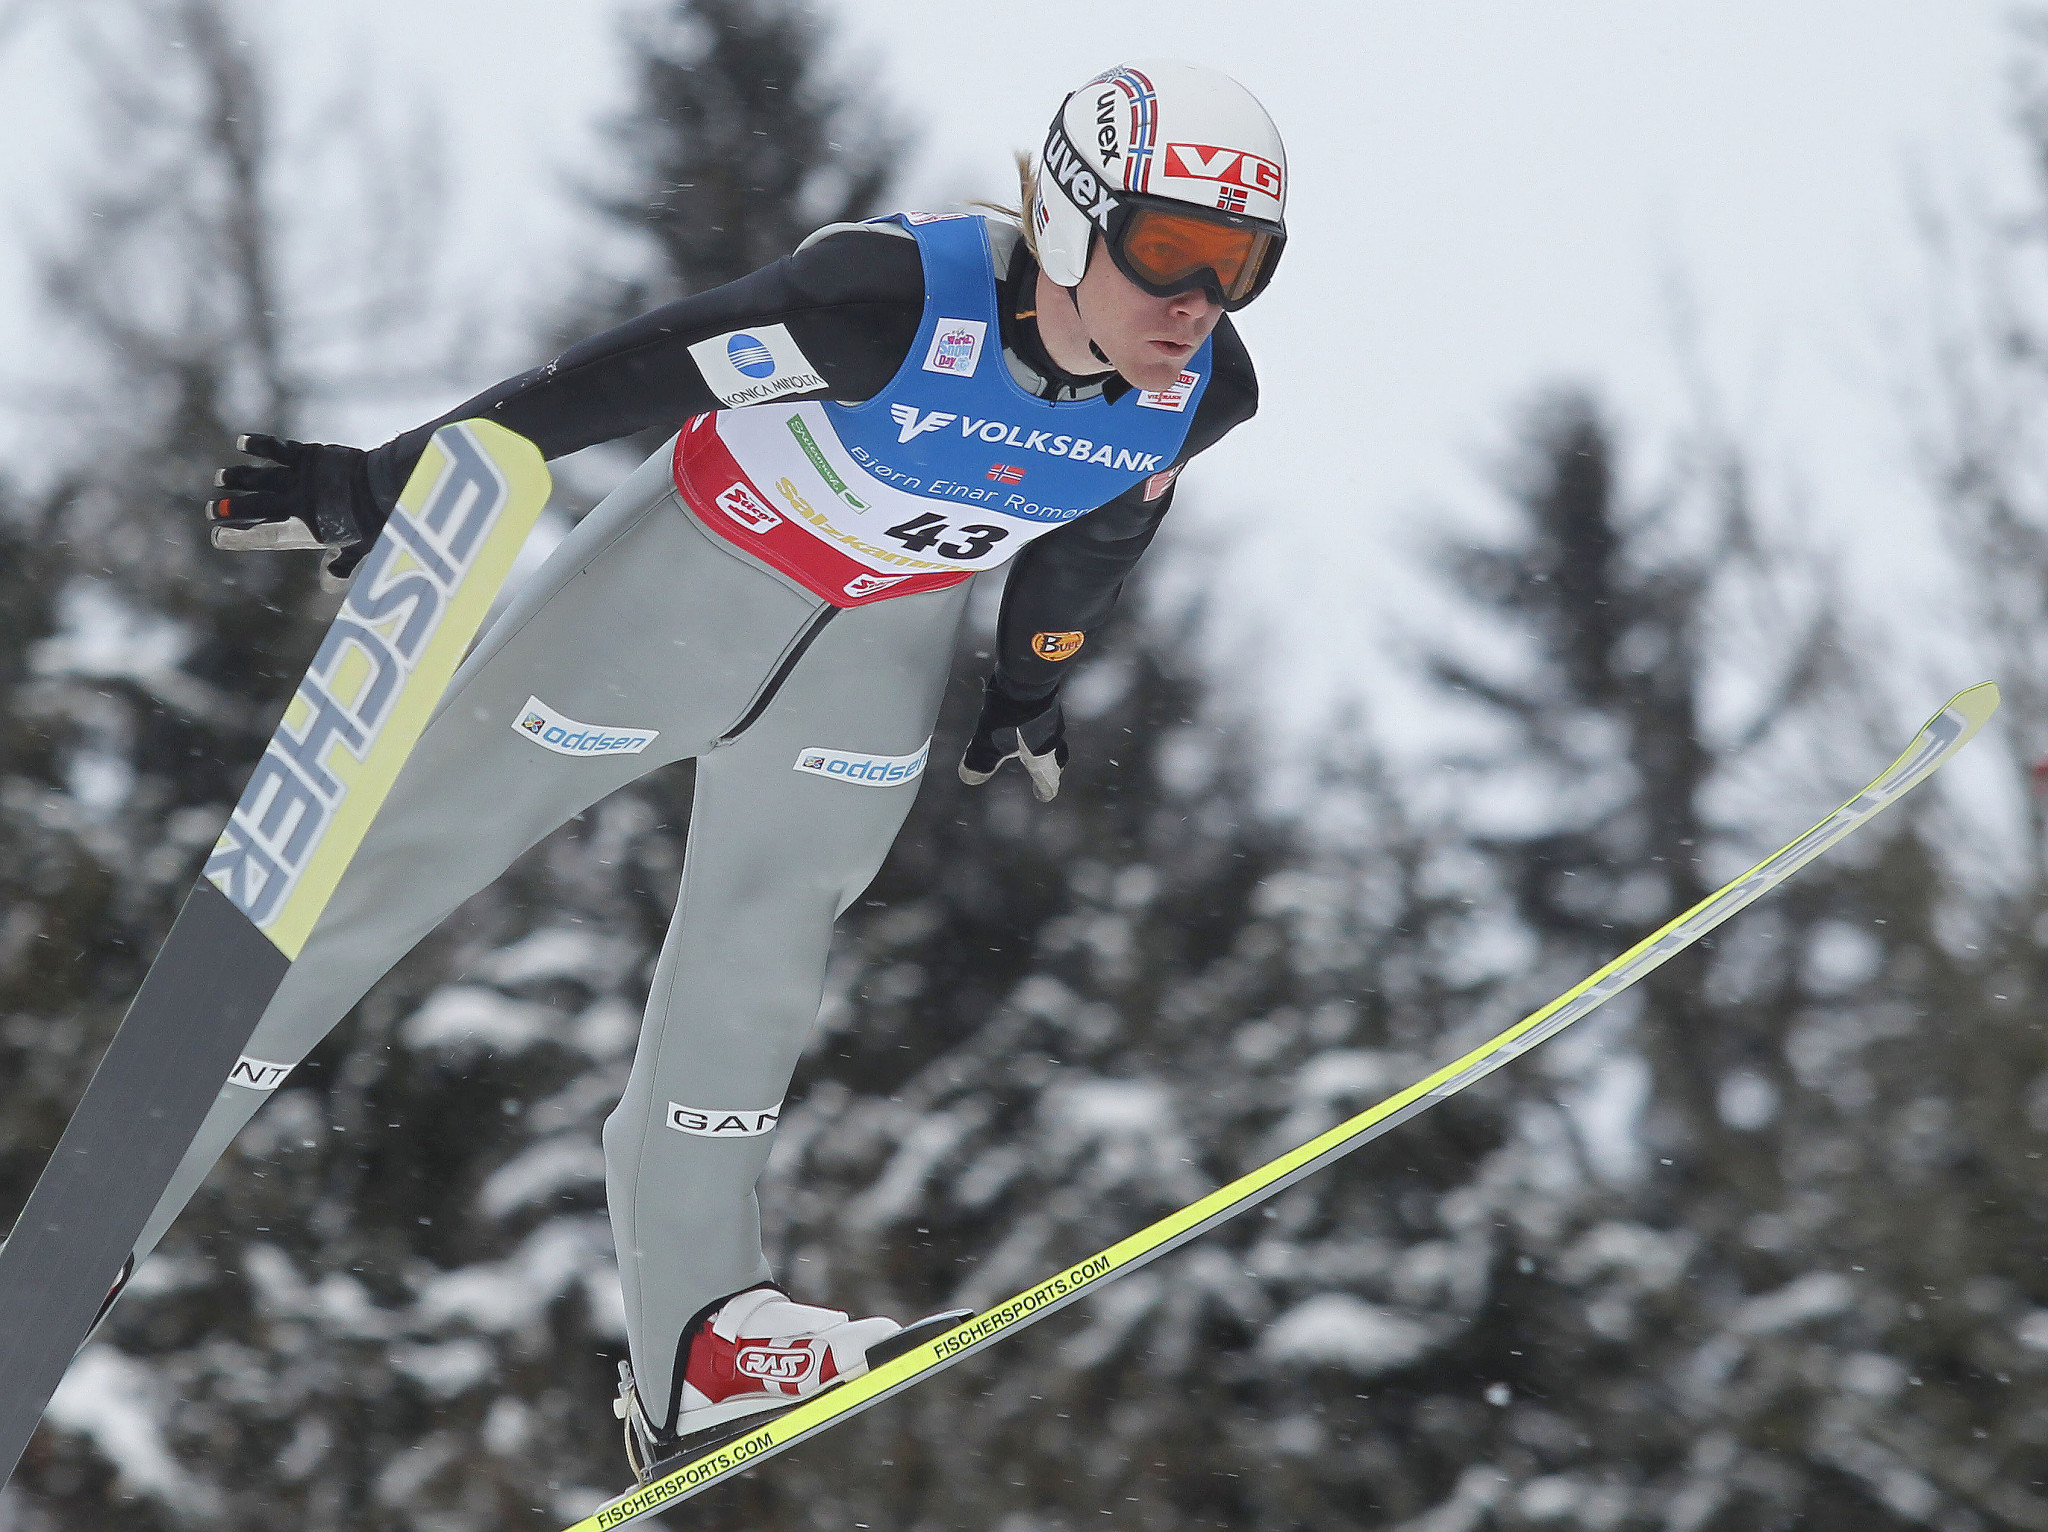 Norwegian ski jumper Romoeren reveals fight against cancer